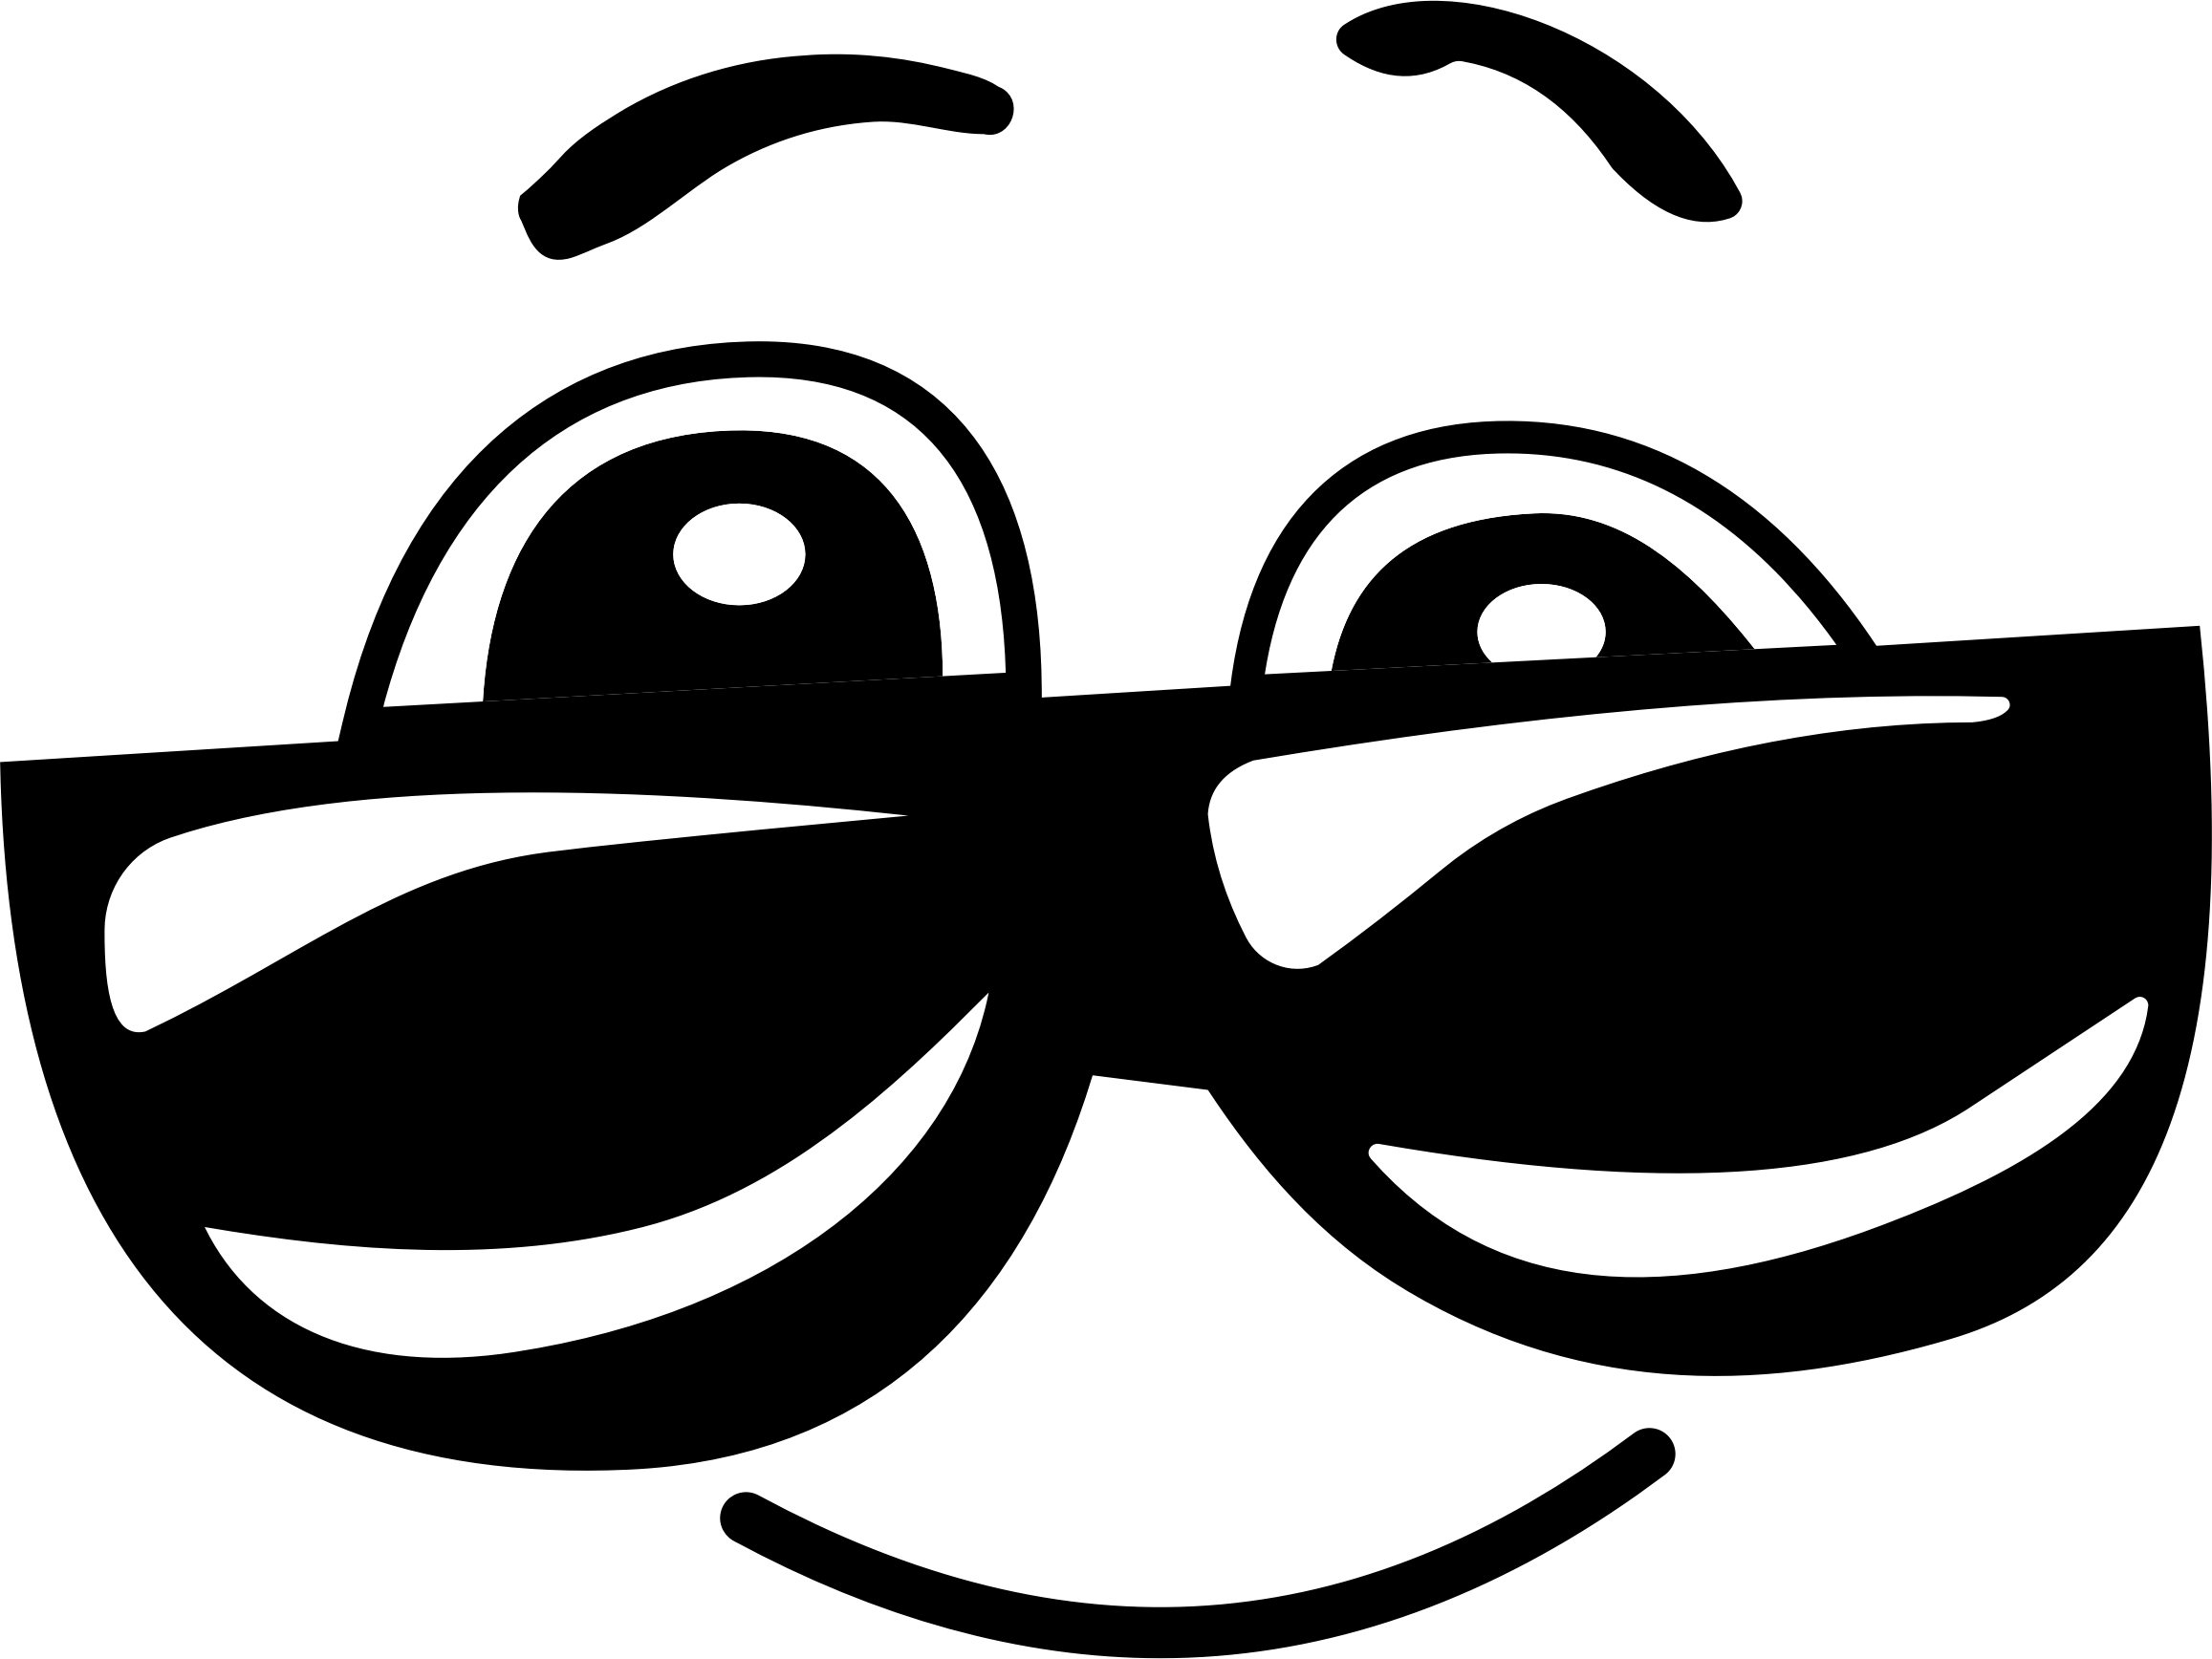 Smiley face big image. Clipart sunglasses black and white